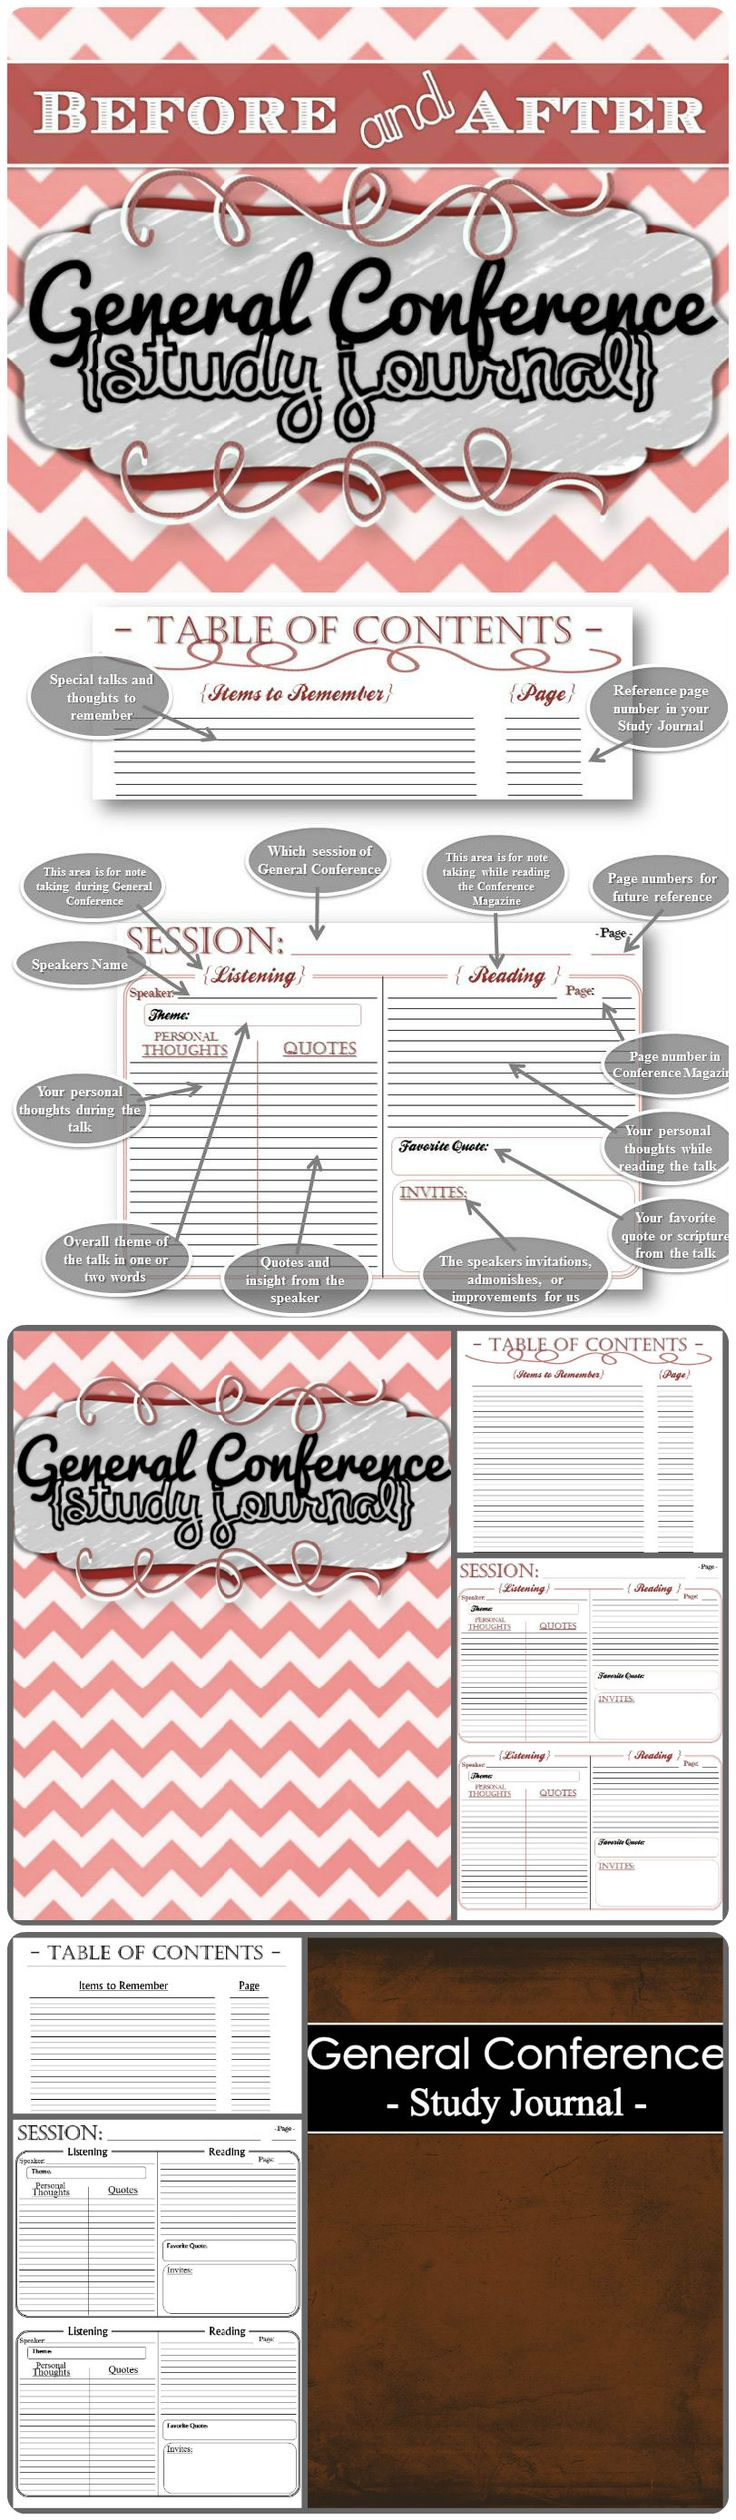 All your notes in an all-in-one notebook, along with all the usual writing prompts and referencing. There is a section for taking notes DURING General Conference and a section for taking notes AFTER General Conference; (reading the talks, preparing a lesson, etc.) Two cover choices and four styles included for $1.49.